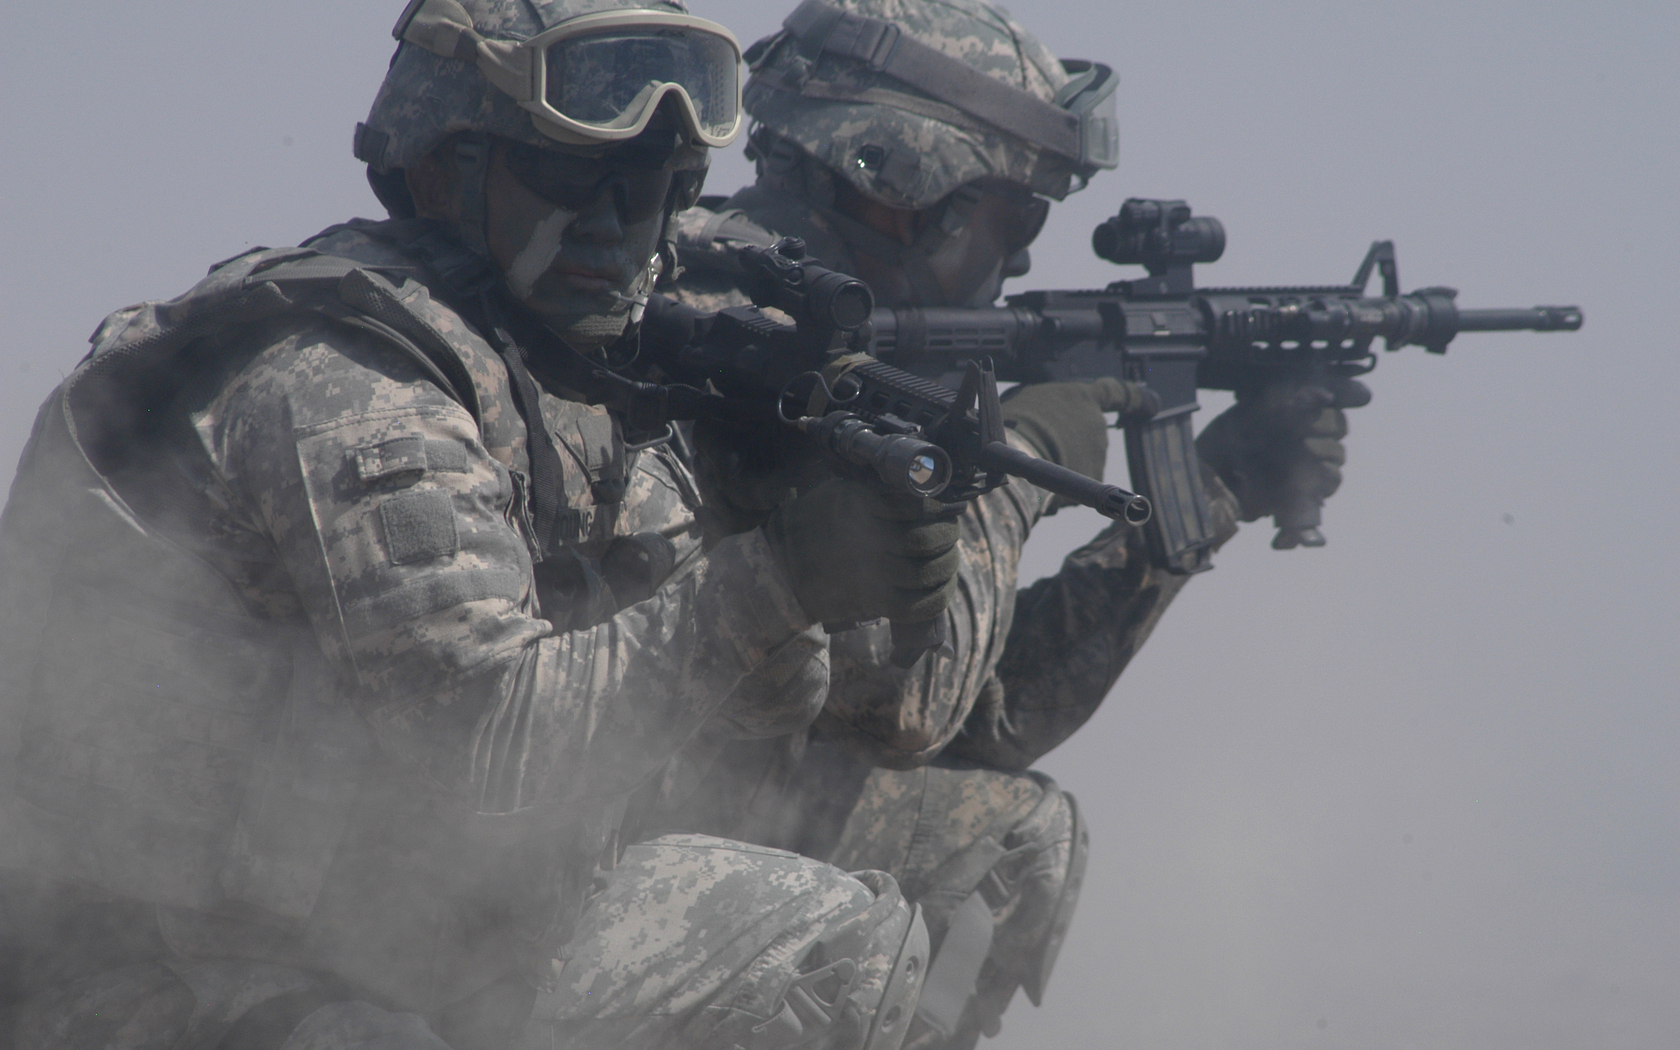 1680x1050 - US Army Screensavers and Wallpaper 14